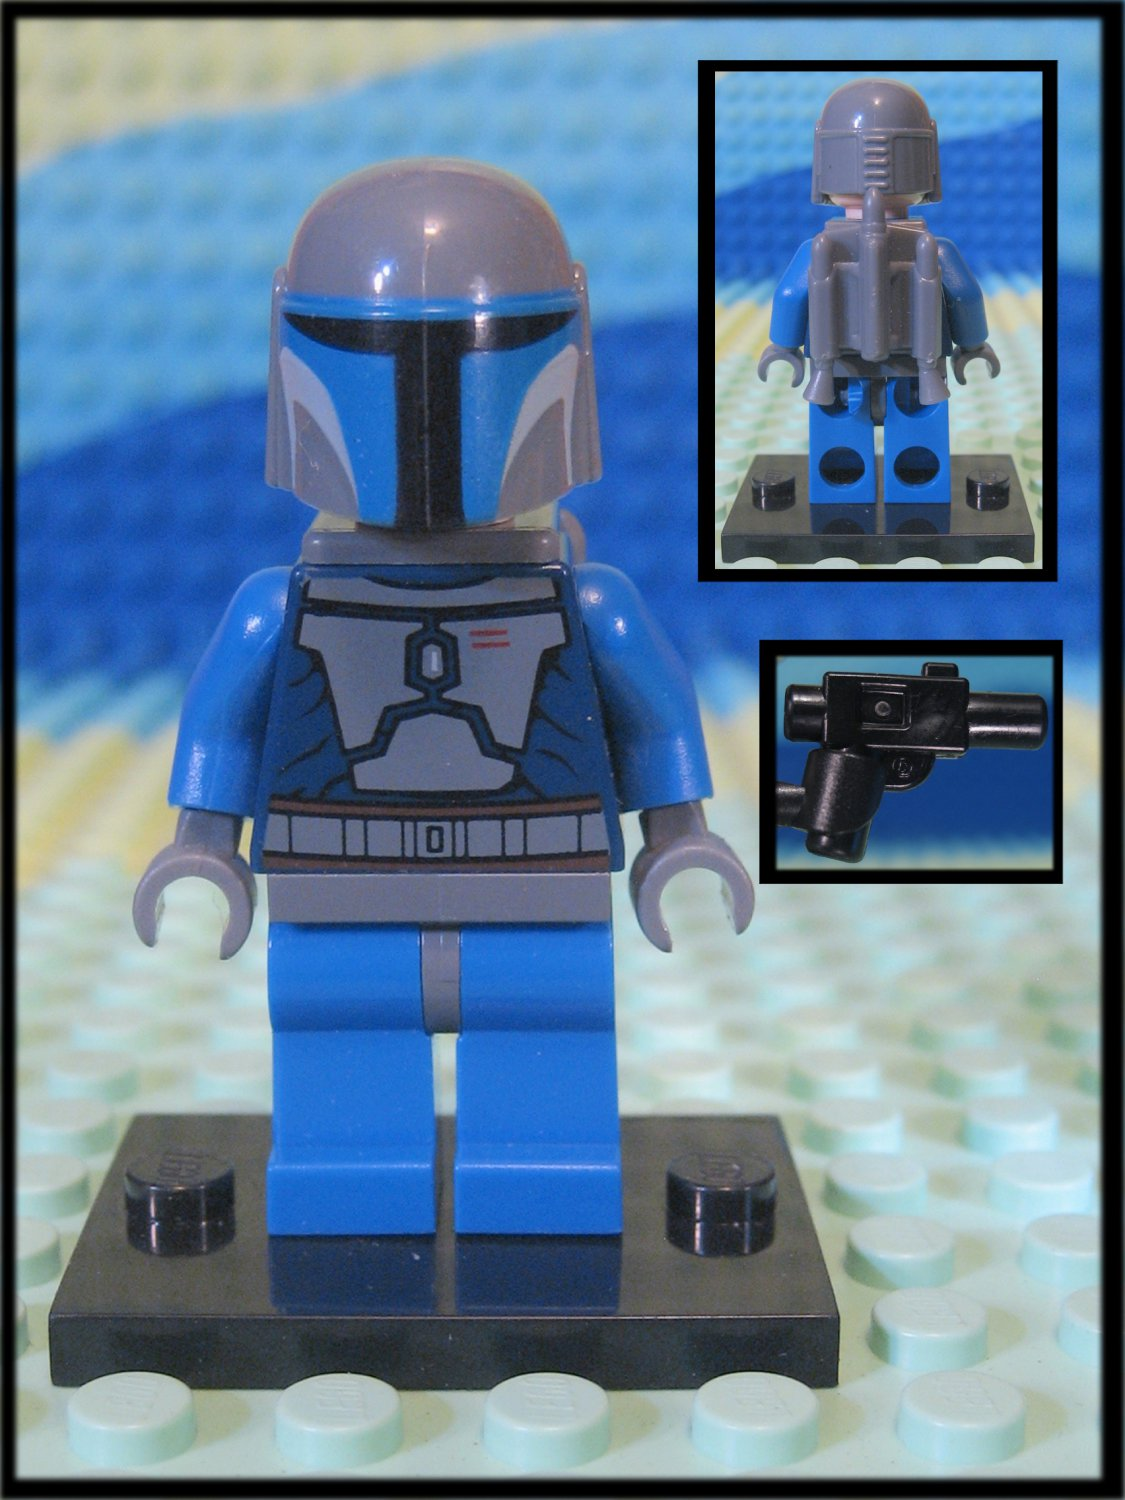 Genuine Authentic Star Wars Mandalorian Lego Minifigure + Blaster